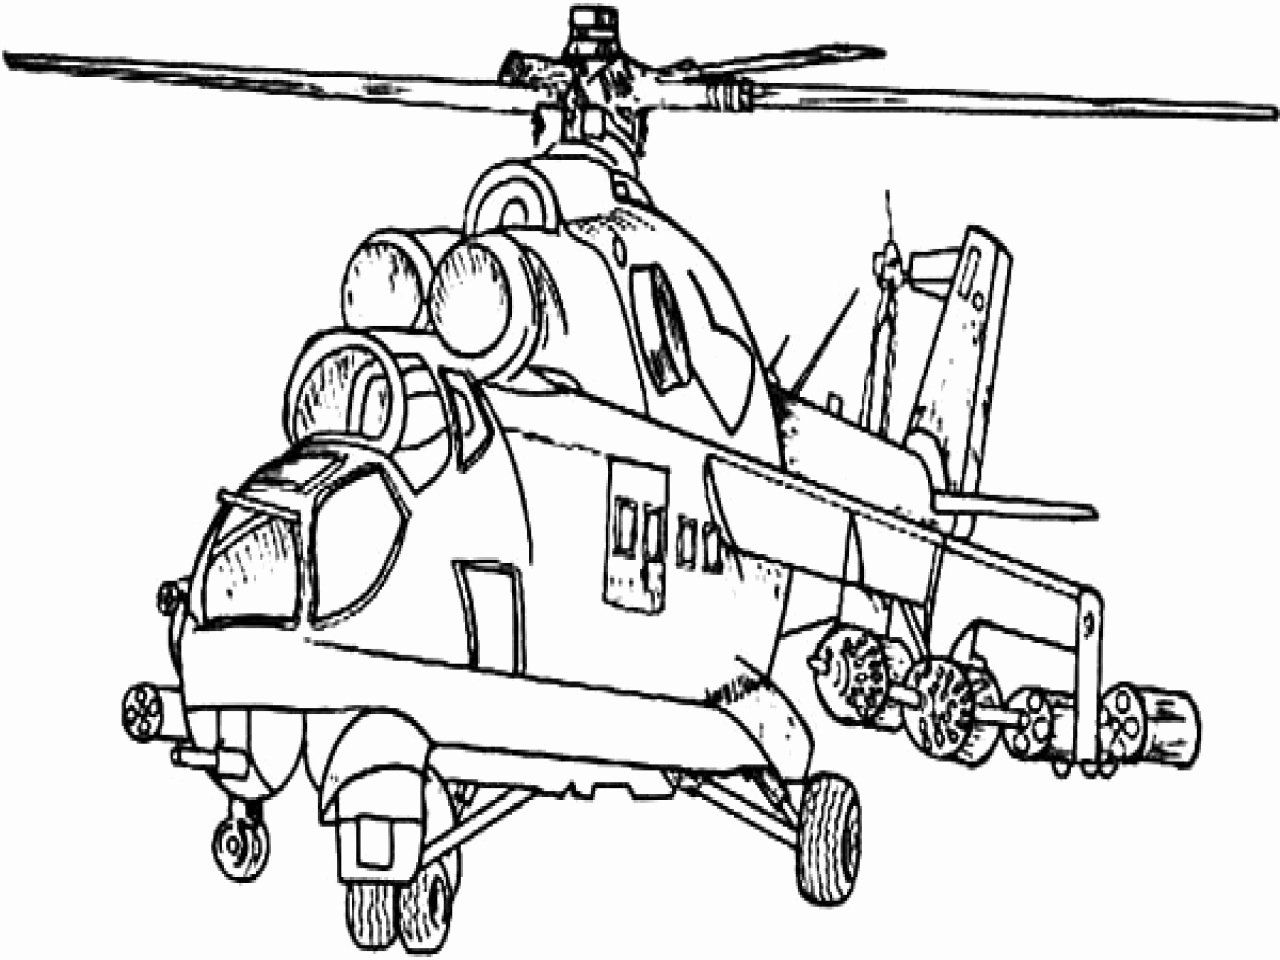 Military Coloring Pages For Adults Beautiful Helicopters Coloring Pages In 2020 Airplane Coloring Pages Truck Coloring Pages Coloring Pages